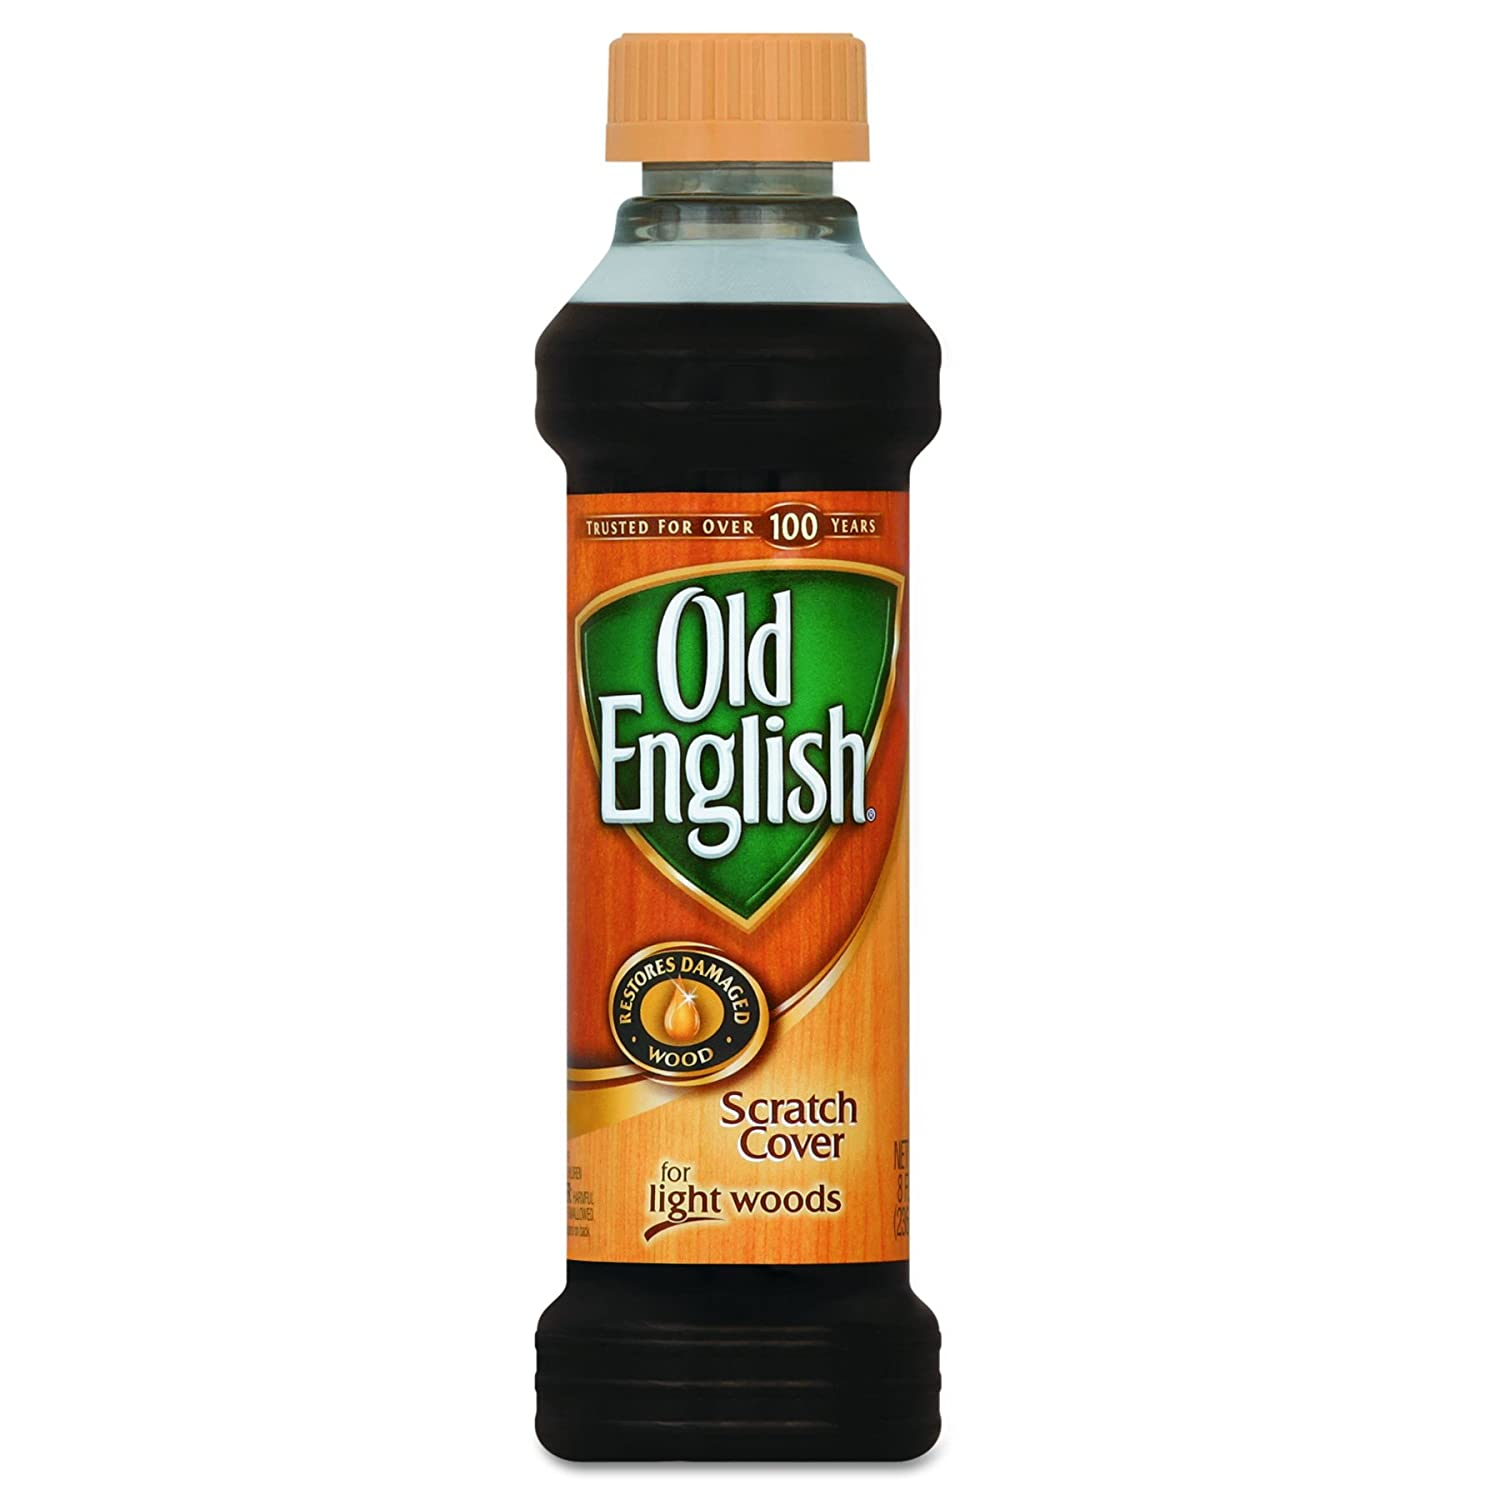 Old English Scratch Cover Ranking TOP13 For Max 67% OFF Light Wood Woods fl 8 oz Bottle